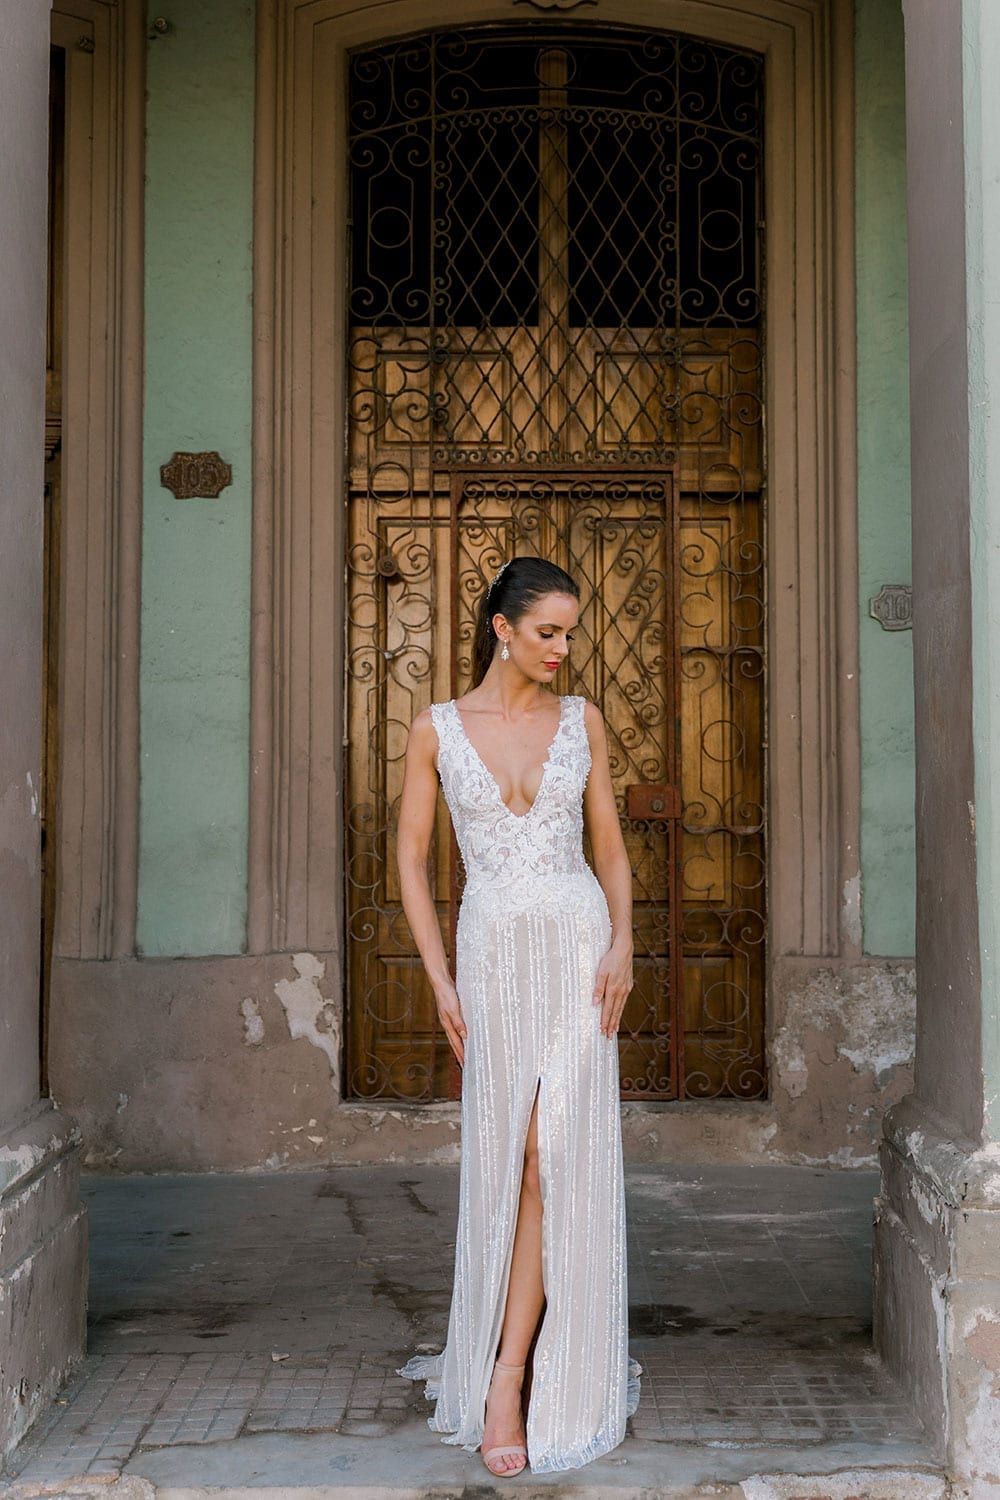 Model wearing Vinka Design Natalia Wedding Dress, a V-Neck Beaded Lace Wedding Gown in old doorway of Cuba